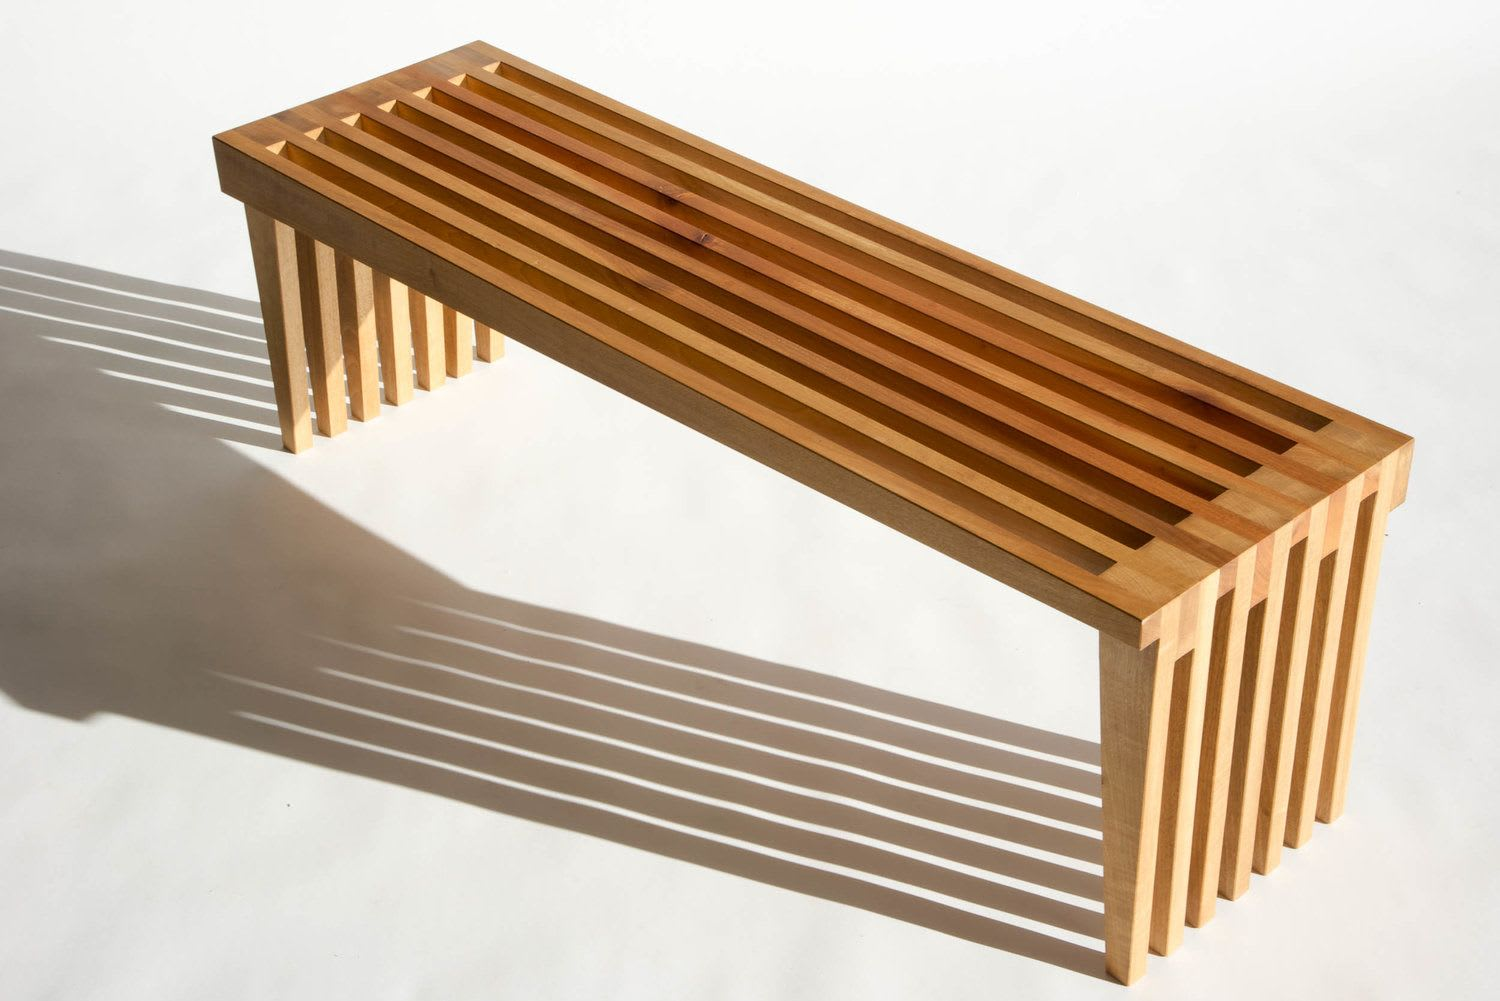 Benches & Ottomans by Green Ranch Furniture seen at Private Residence, Philo - Fourfold Library Bench